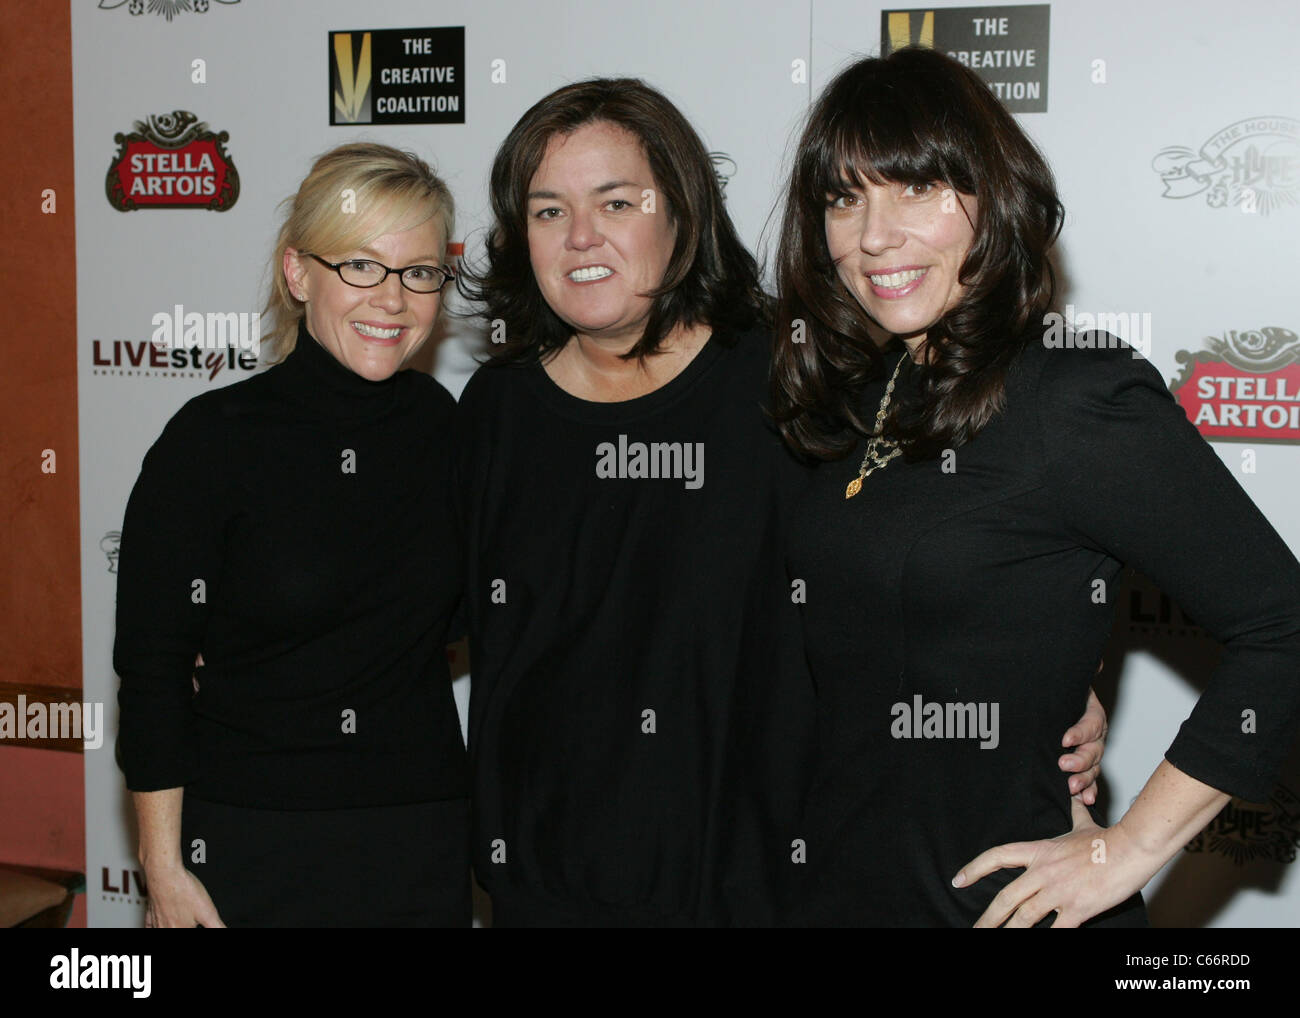 Rachael Harris, Rosie O'Donnell, Robin Bronk (CEO, Creative Coalition) at arrivals for The Creative Coalition's - Stock Image